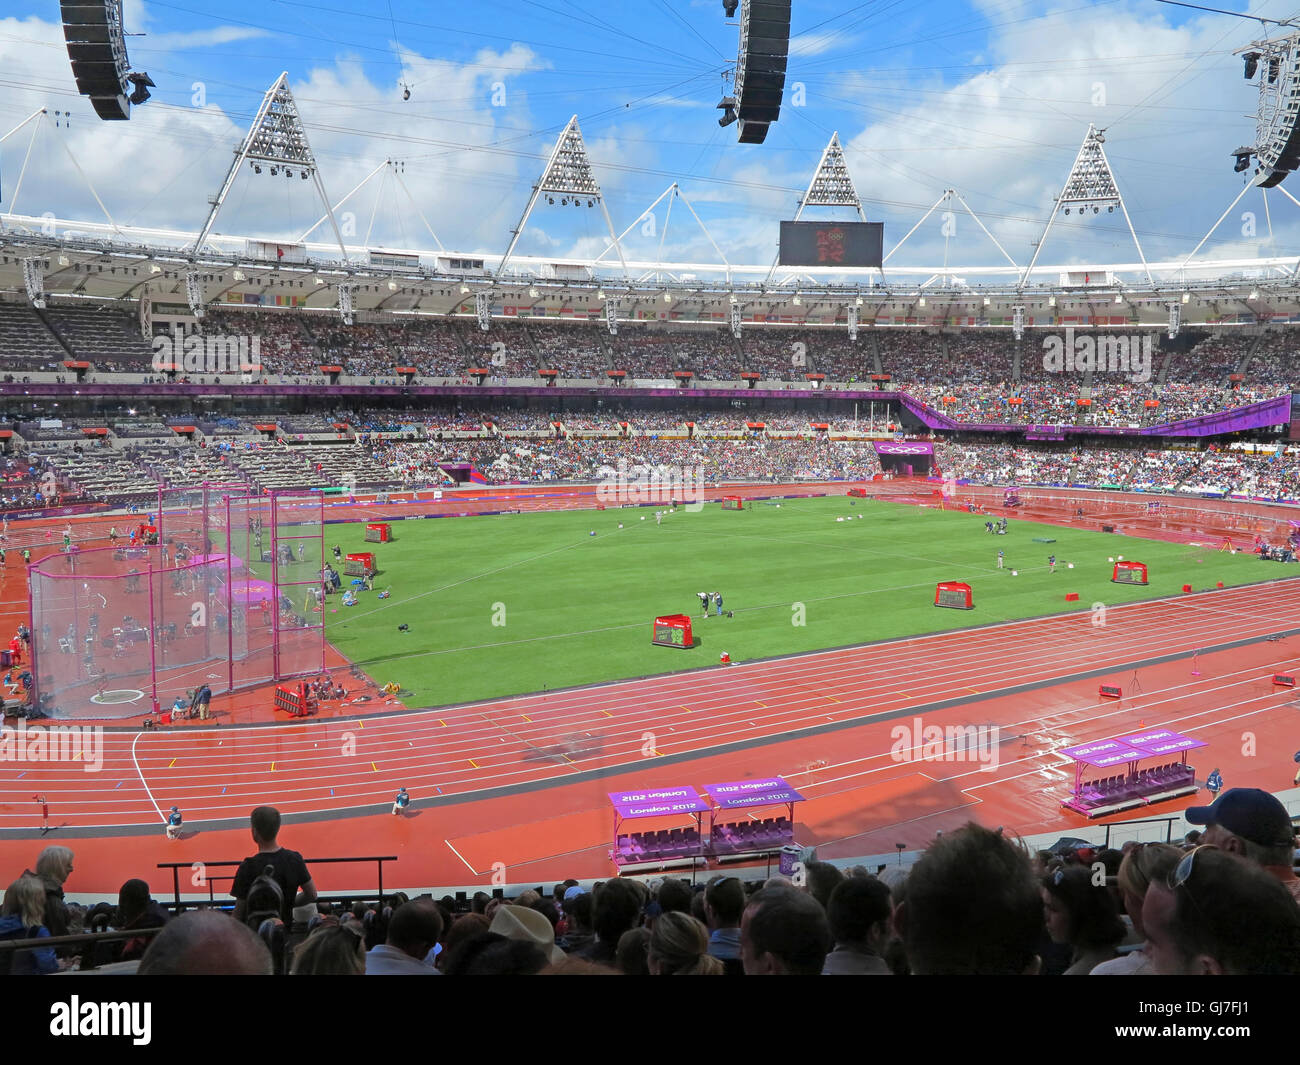 London, England. August 3th, 2012. Athletics in the Olympic Stadium for the Summer Olympics in London 2012 - Stock Image